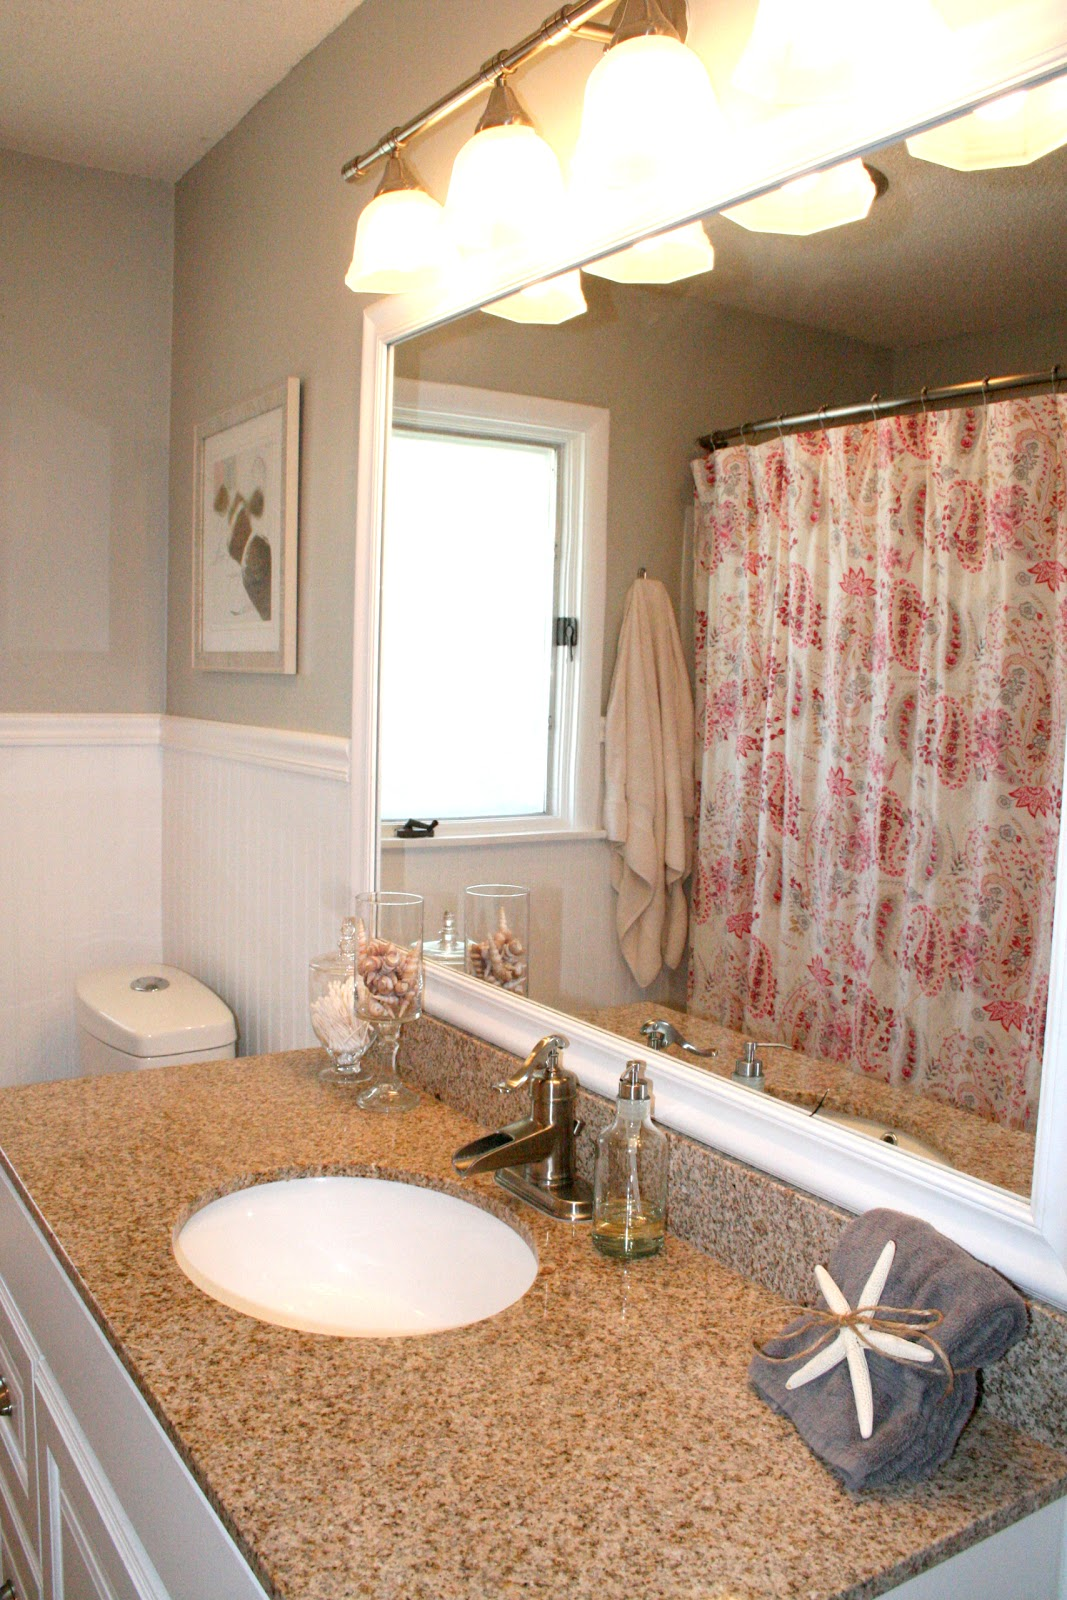 Remodelaholic No More Pink Tile Bathroom Remodel - 1950s bathroom remodel